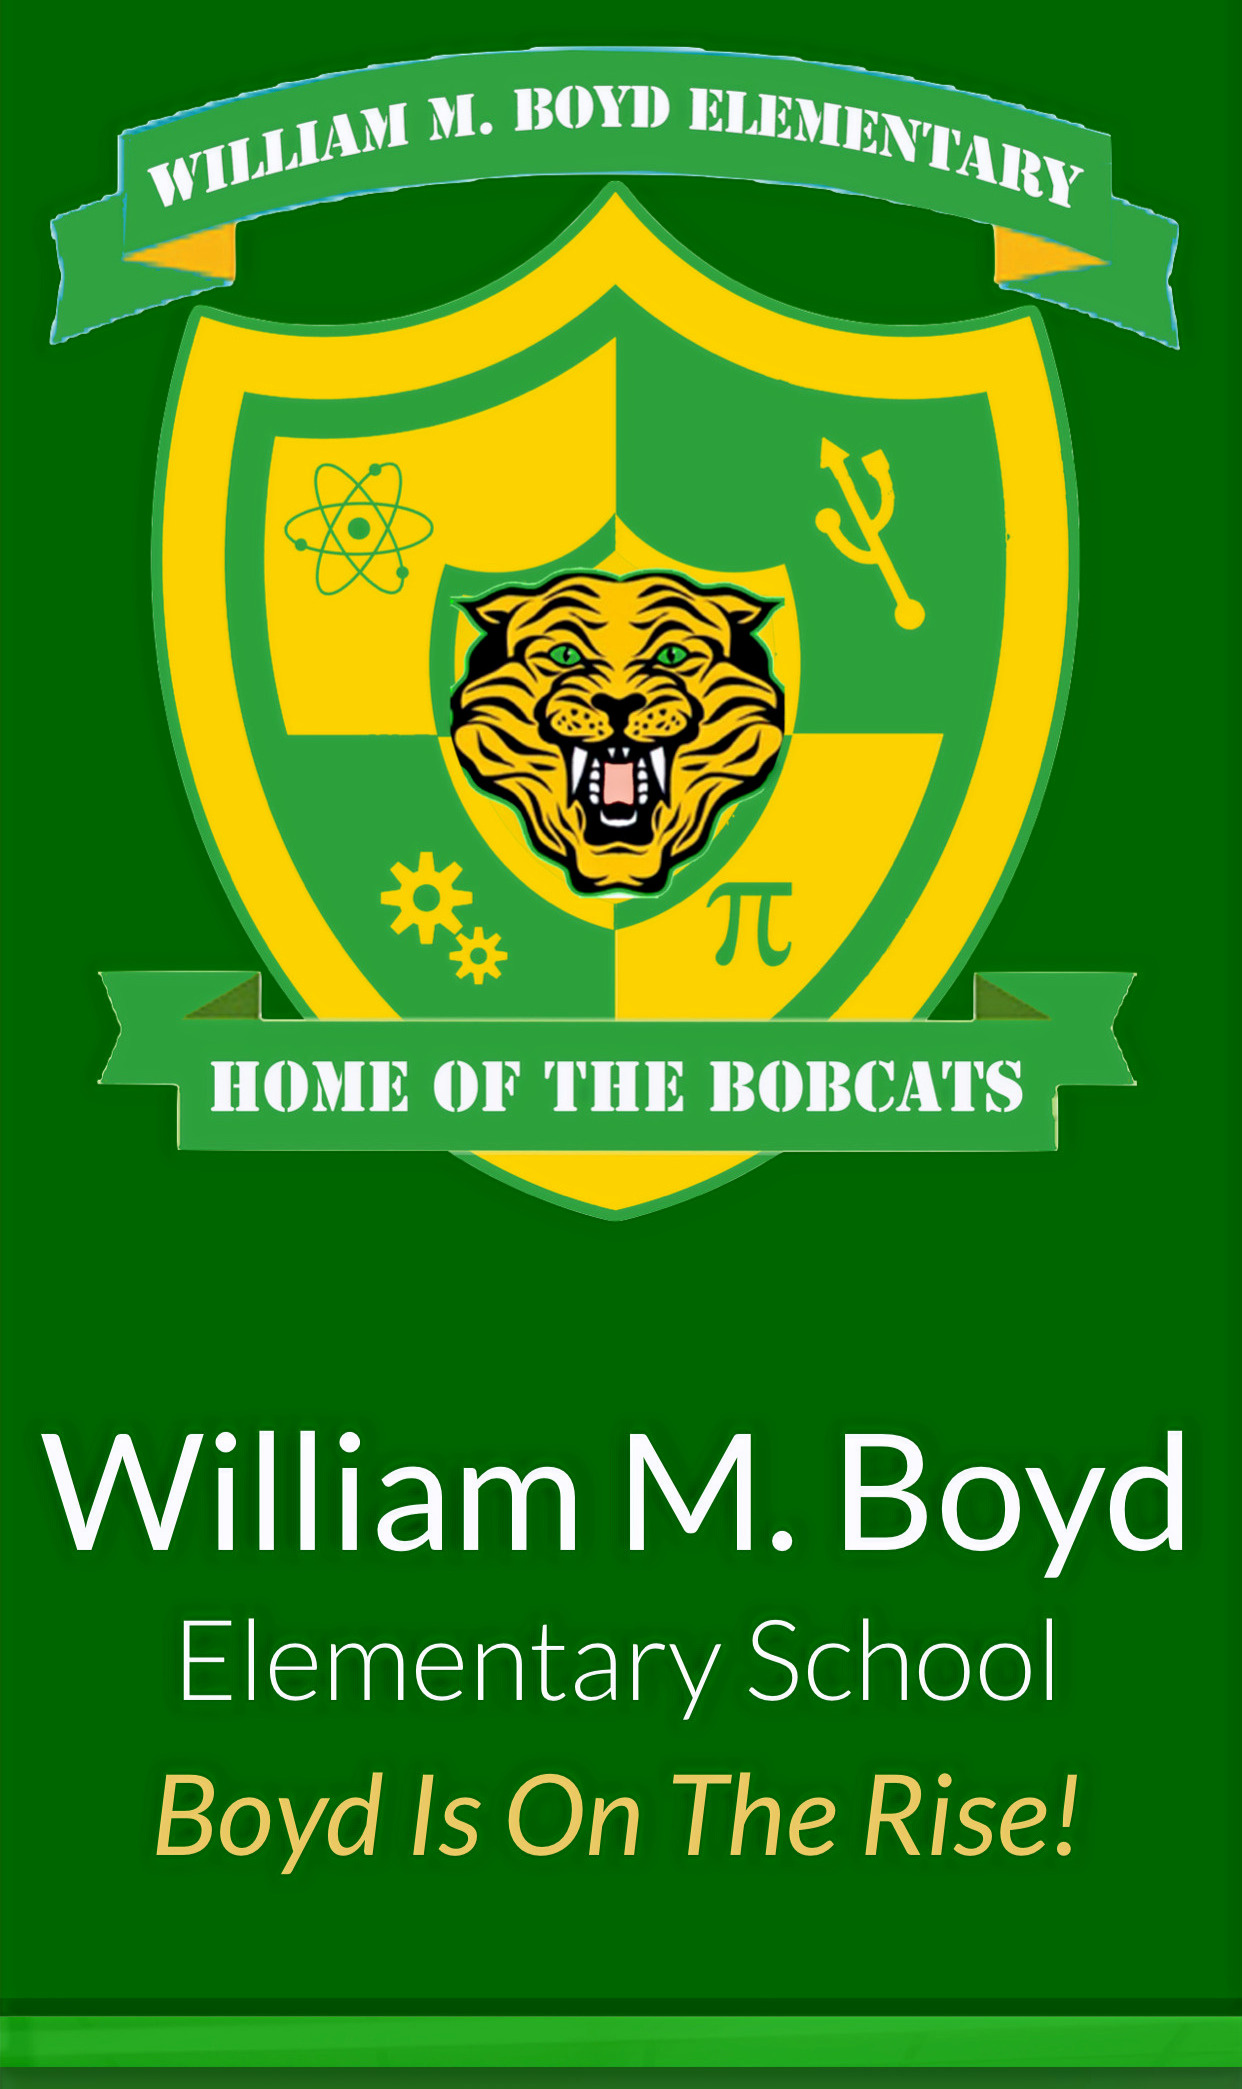 William M. Boyd Elementary_LOGO